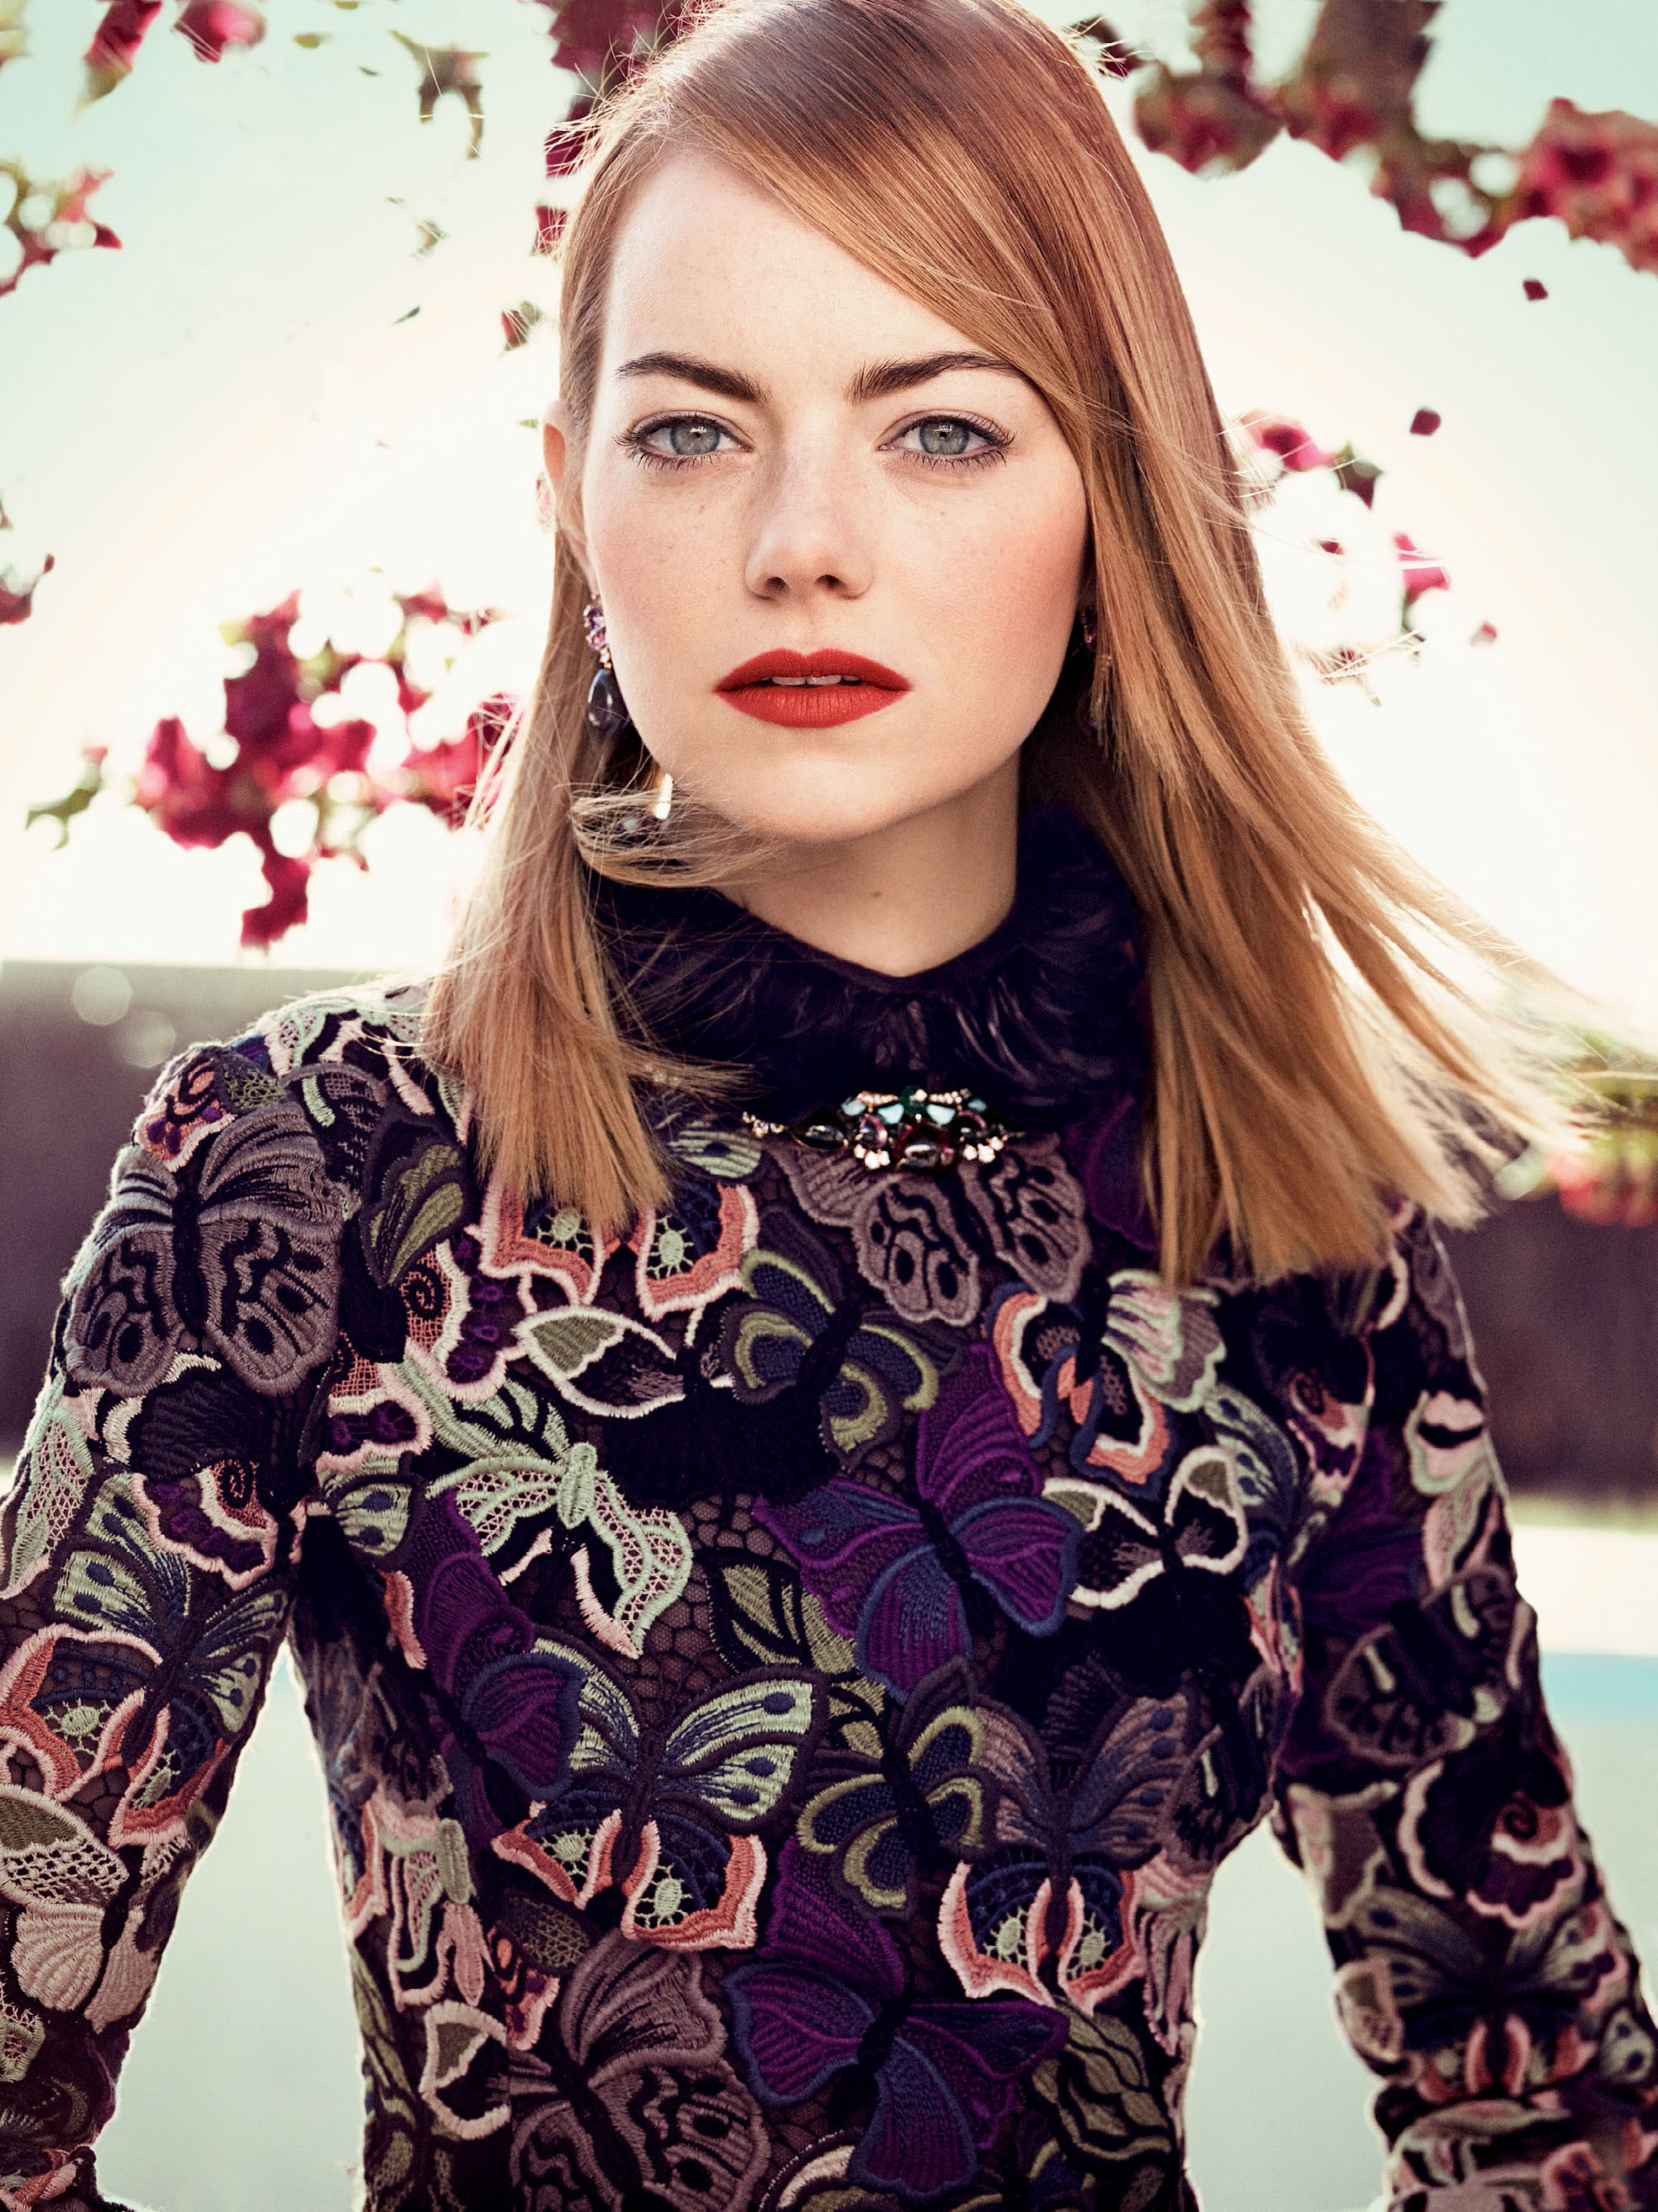 emma-stone-by-craig-mcdean-for-vogue-us-may-20141